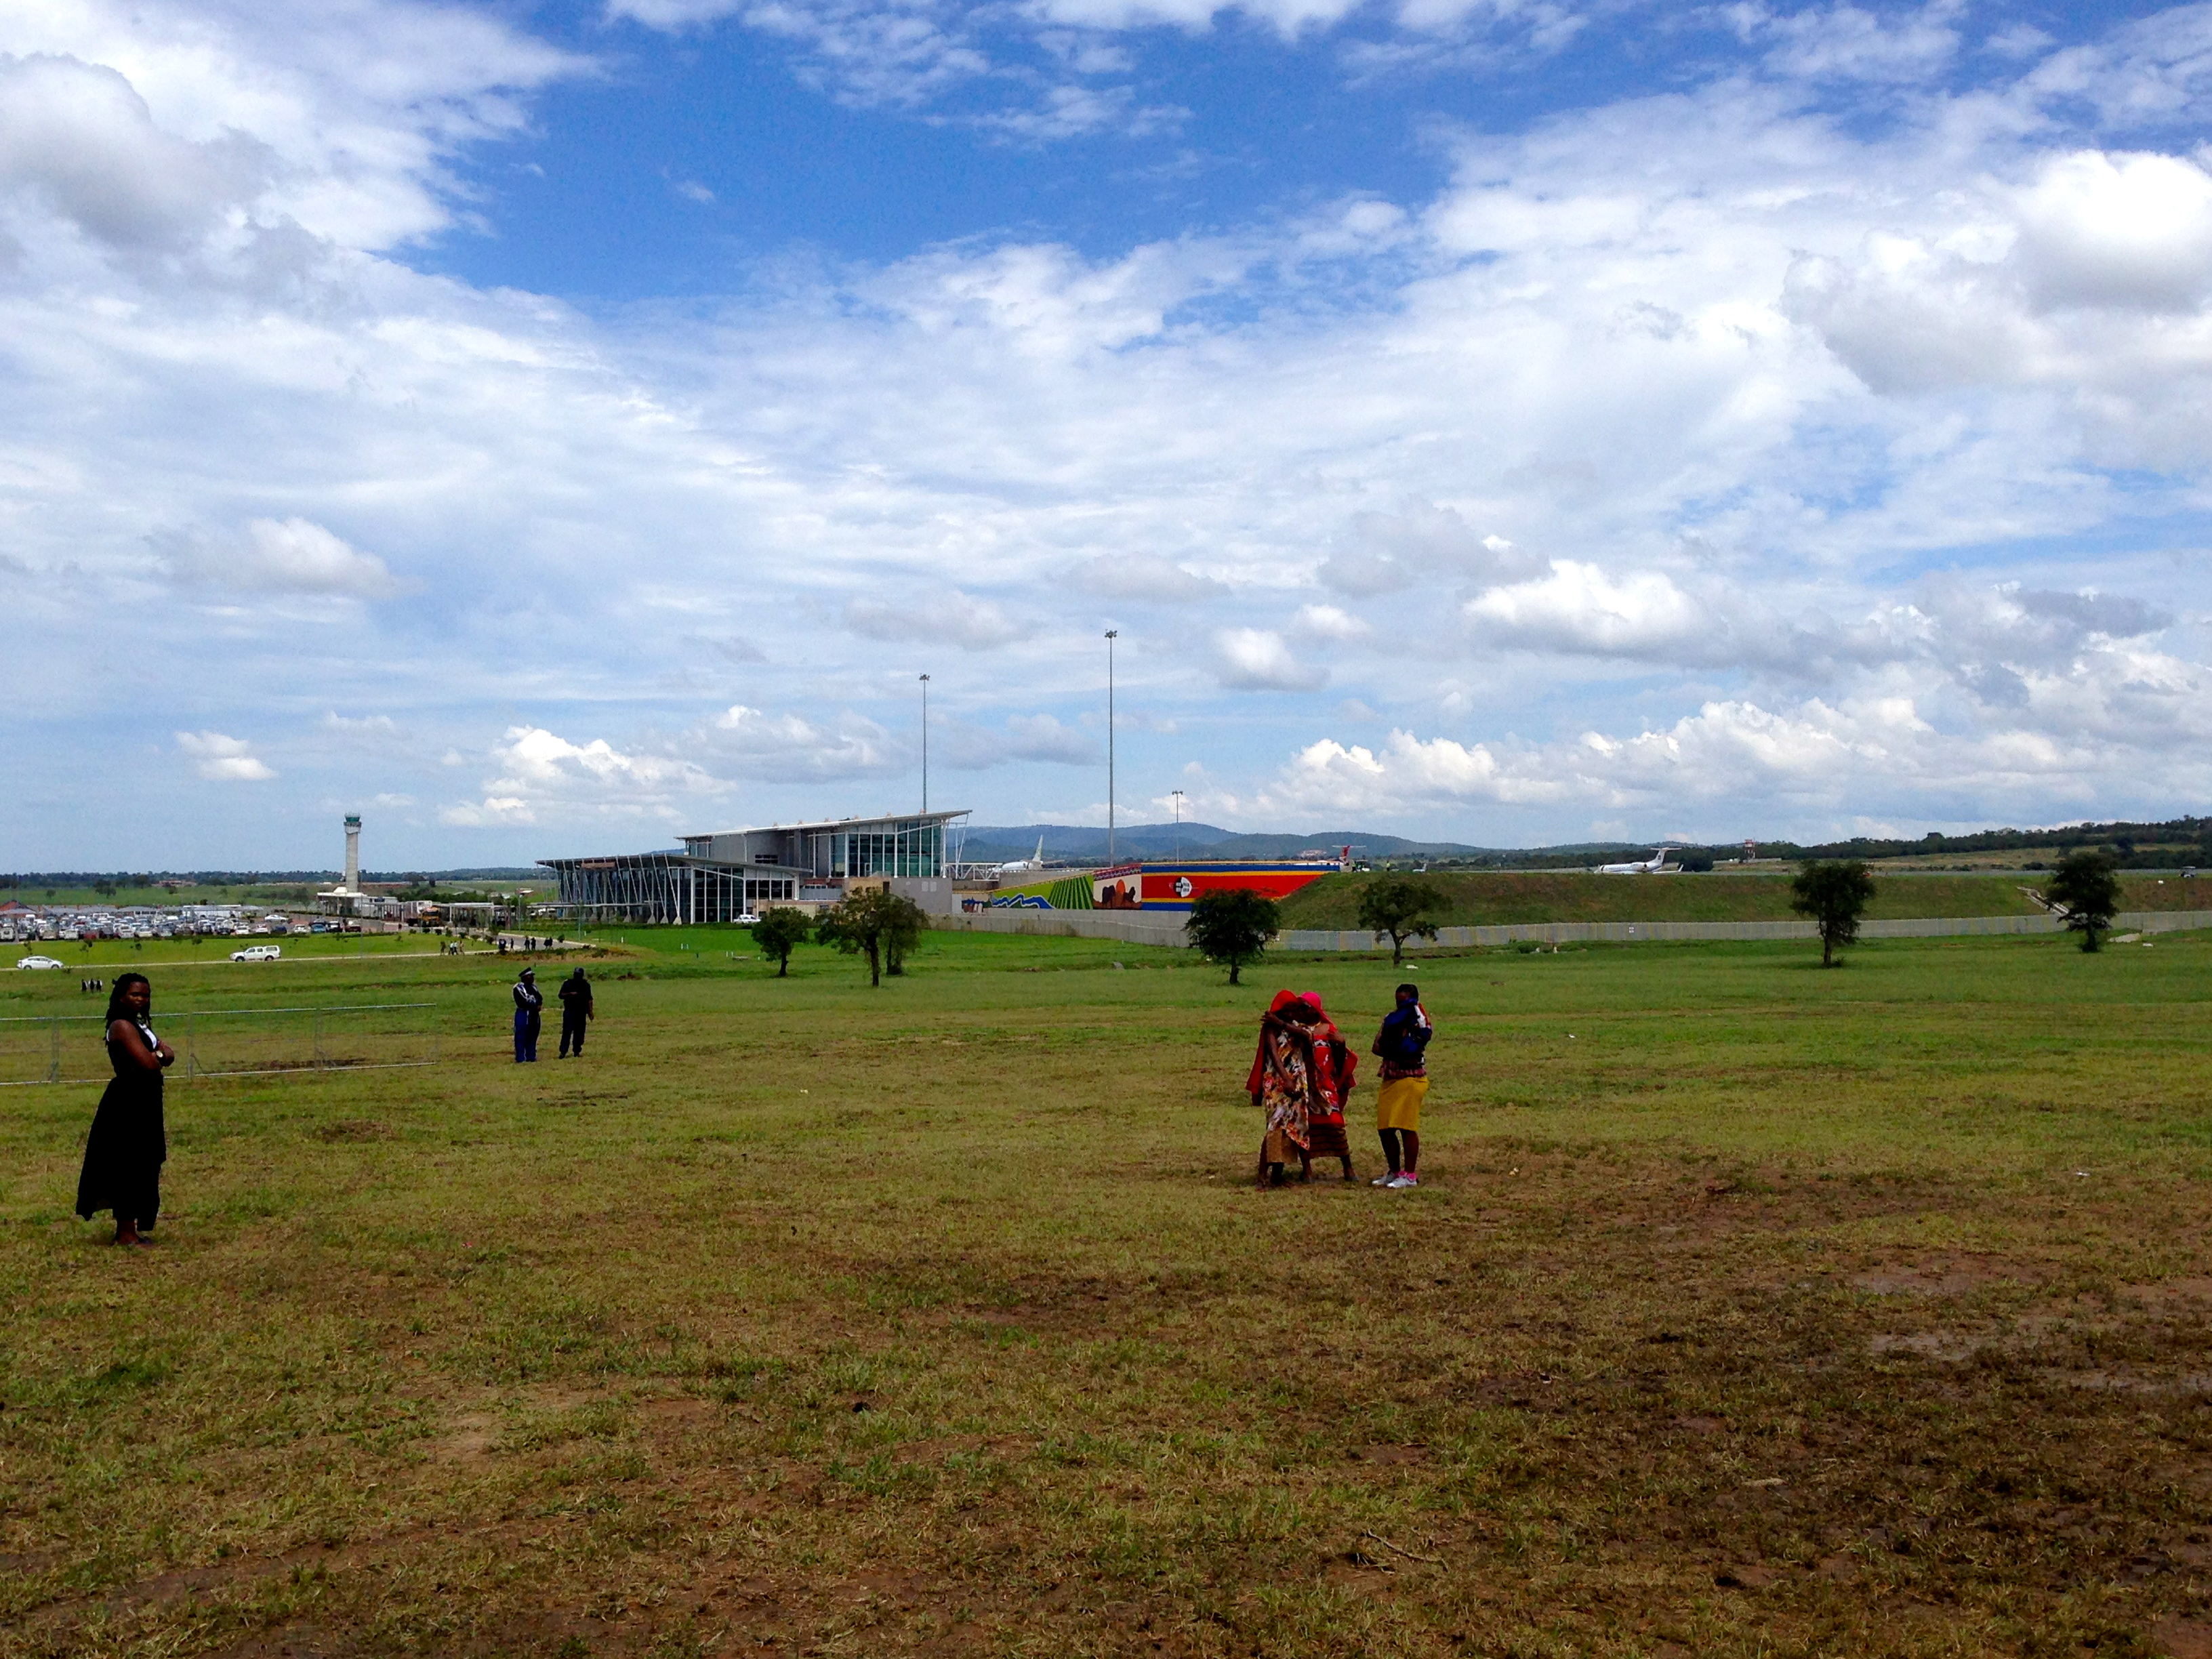 King Mswati III International Airport, formerly known as Sikhuphe Airport